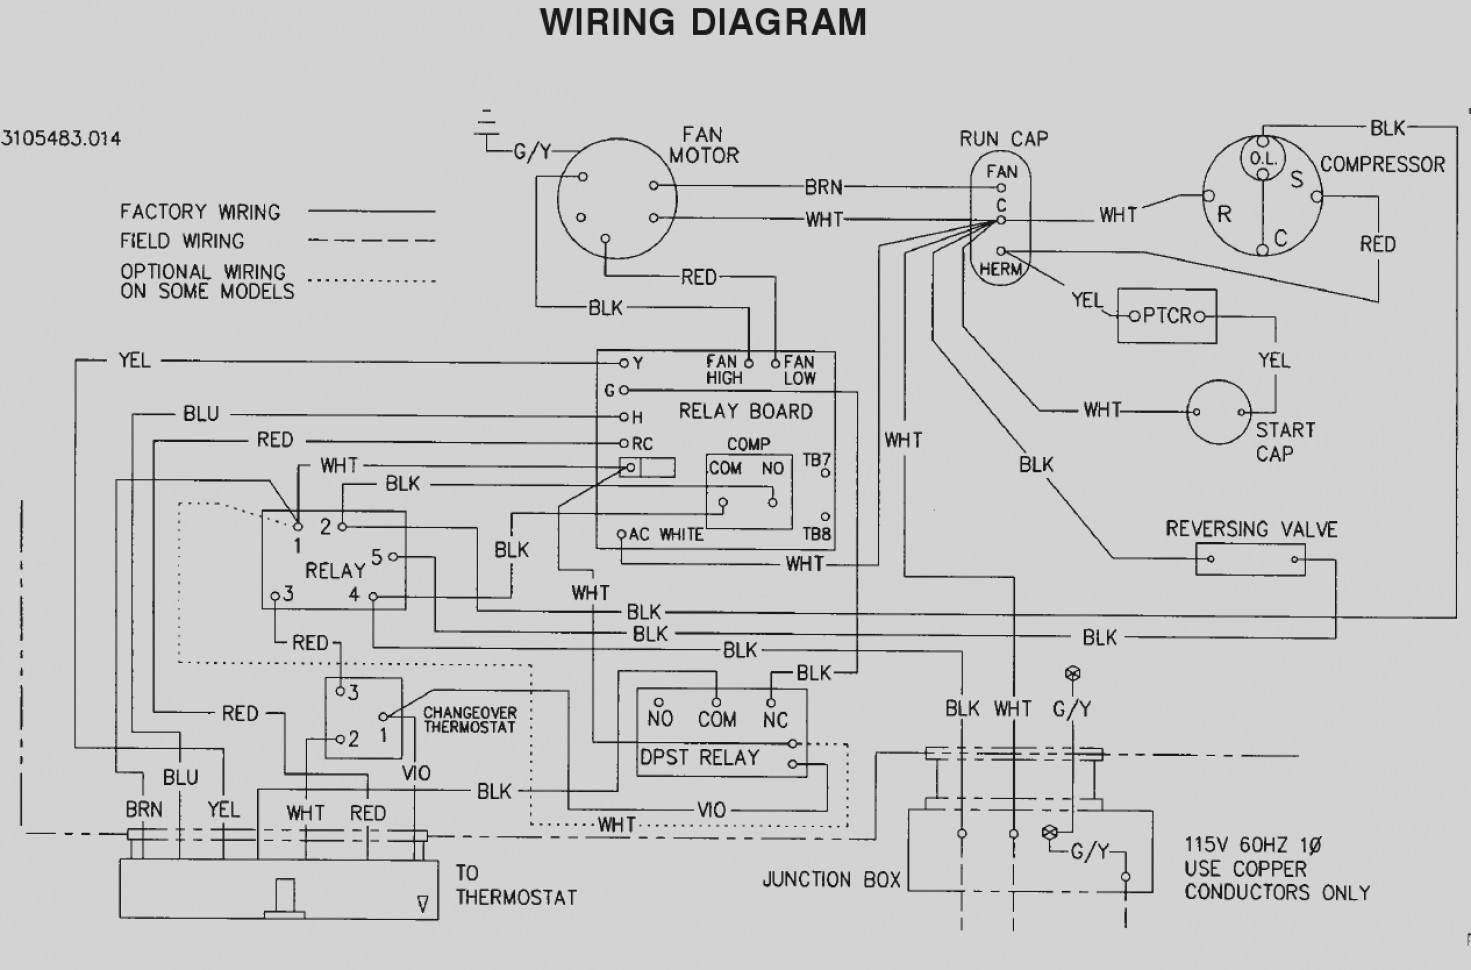 duo therm thermostat 3106995 032 wiring diagram schematics wiring rh case hub co Duo Therm Furnace Wiring Dometic Thermostat Wiring